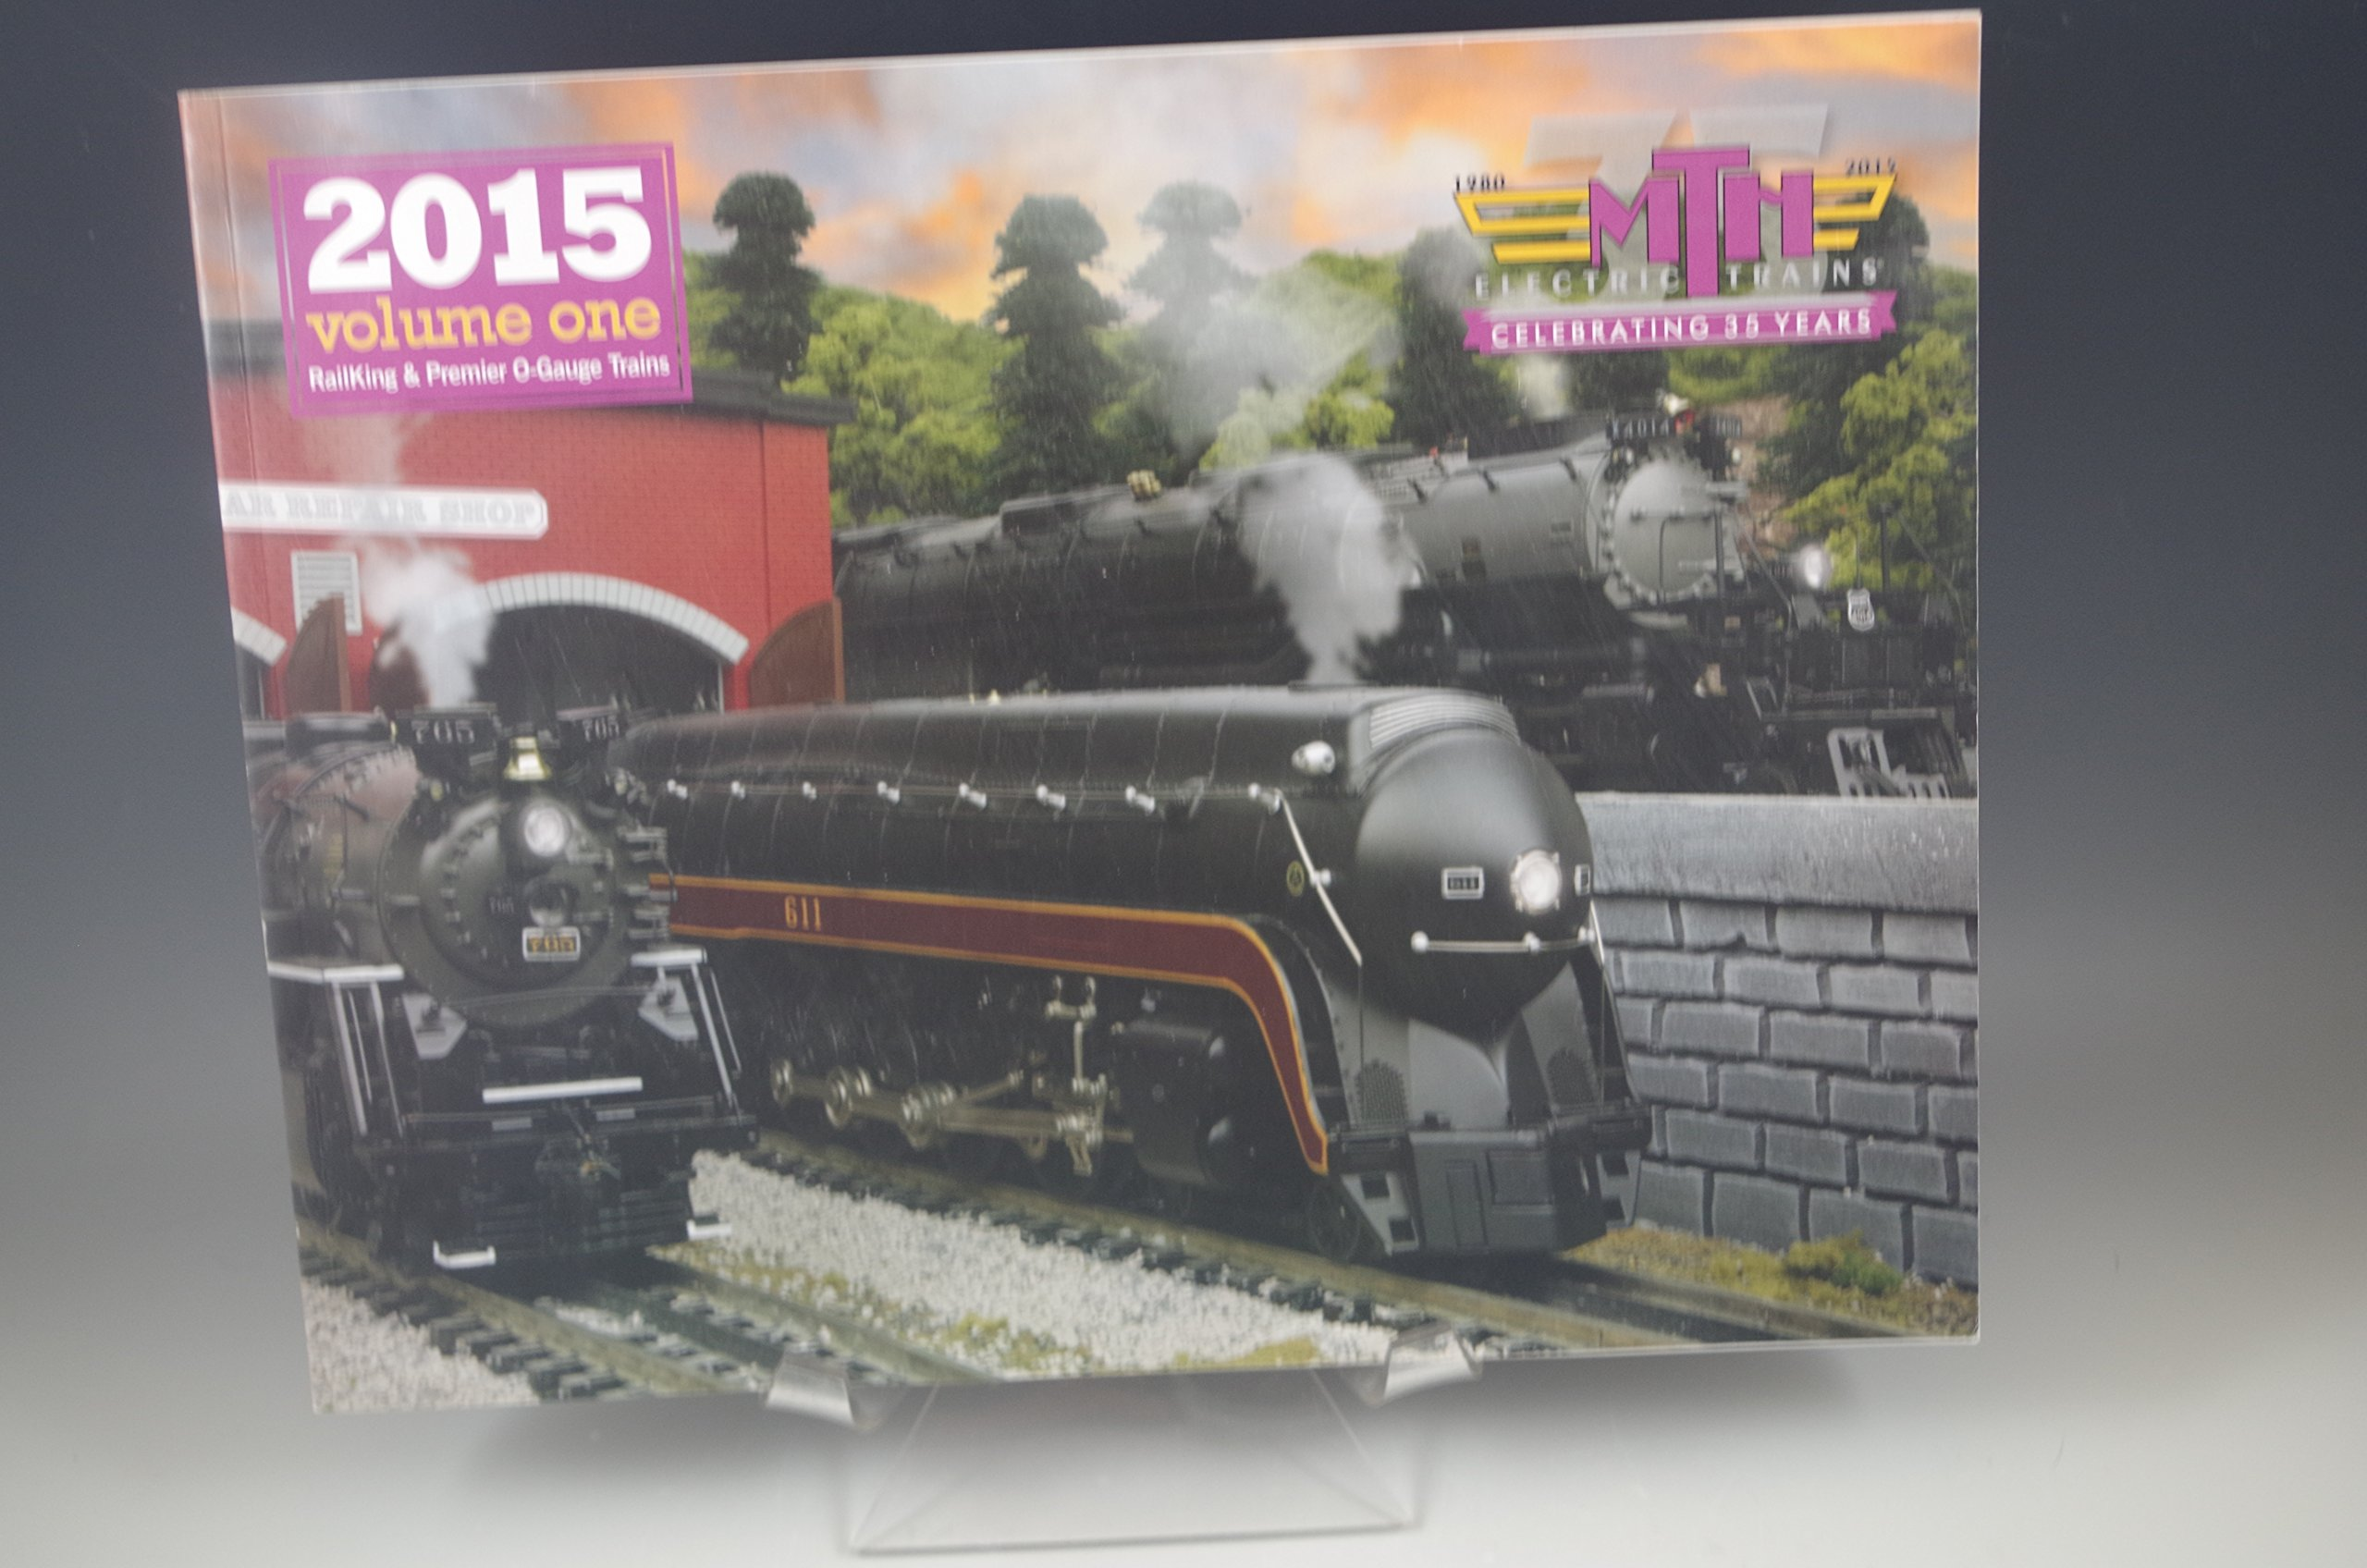 MTH TRAIN CATALOG MAGAZINE 2014 VOL 1: UN: Amazon com: Books